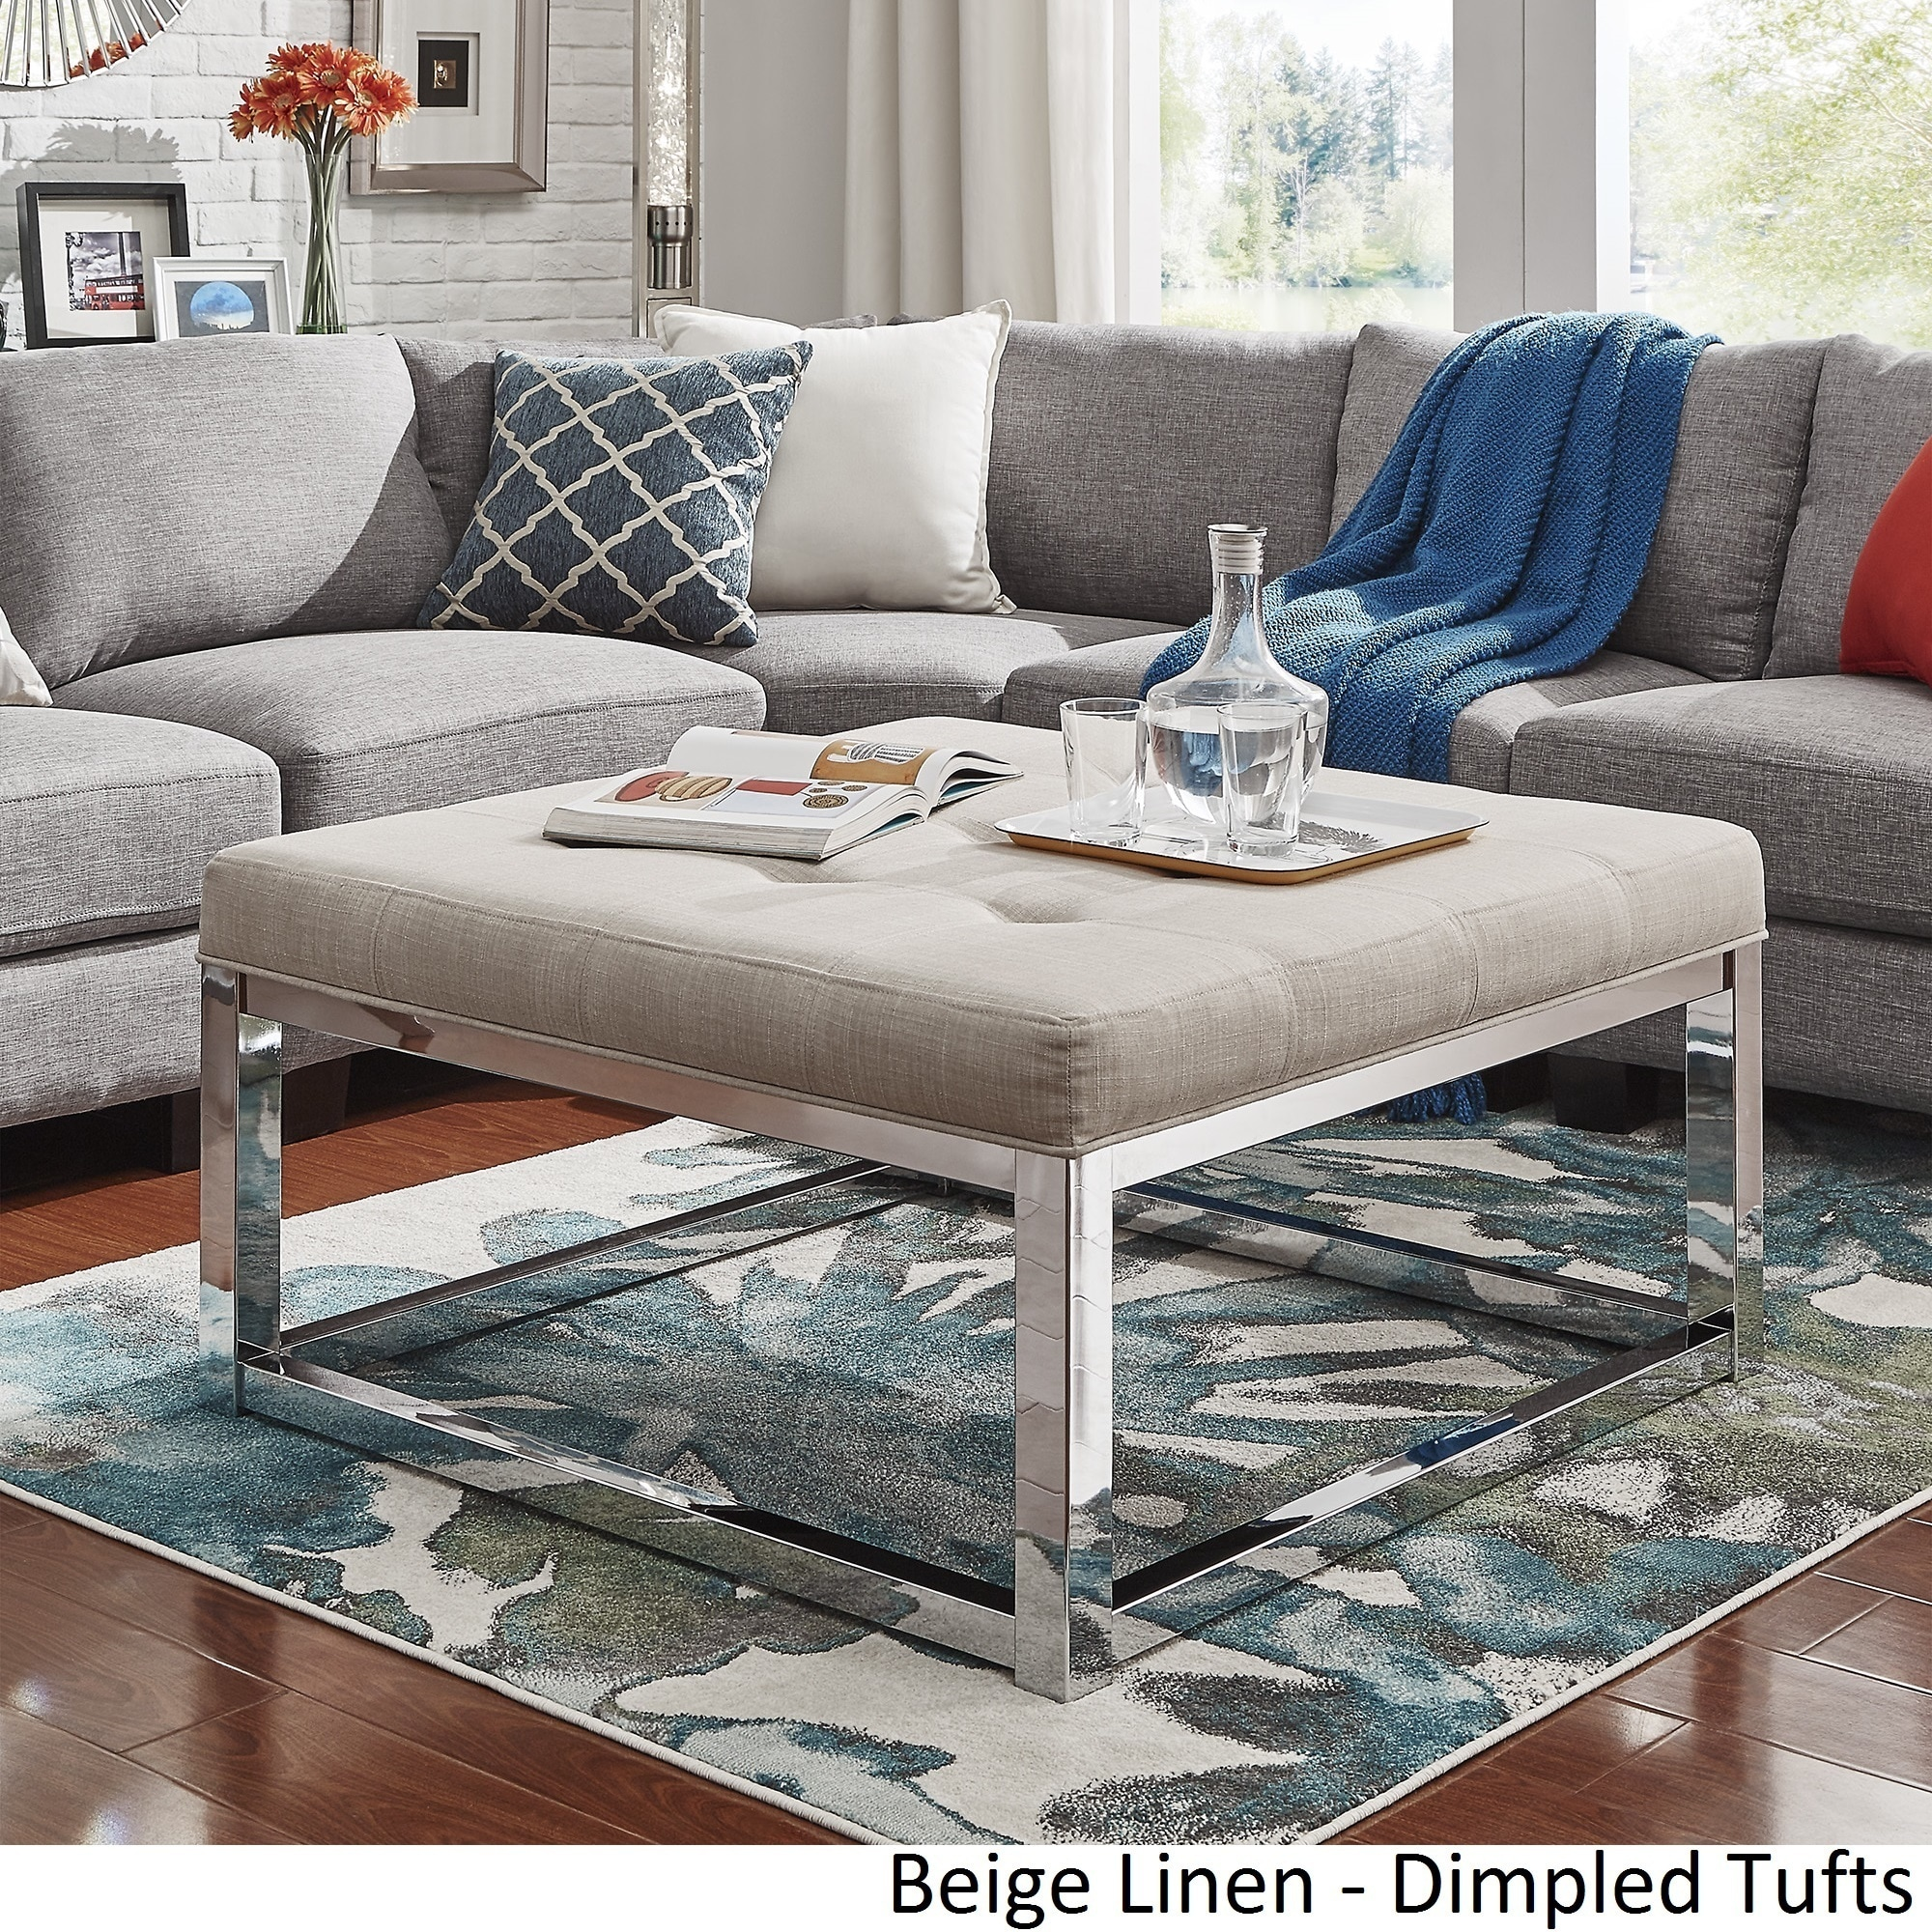 Solene Square Base Ottoman Coffee Table - Chrome by iNSPIRE Q Bold - Free  Shipping Today - Overstock.com - 20158058